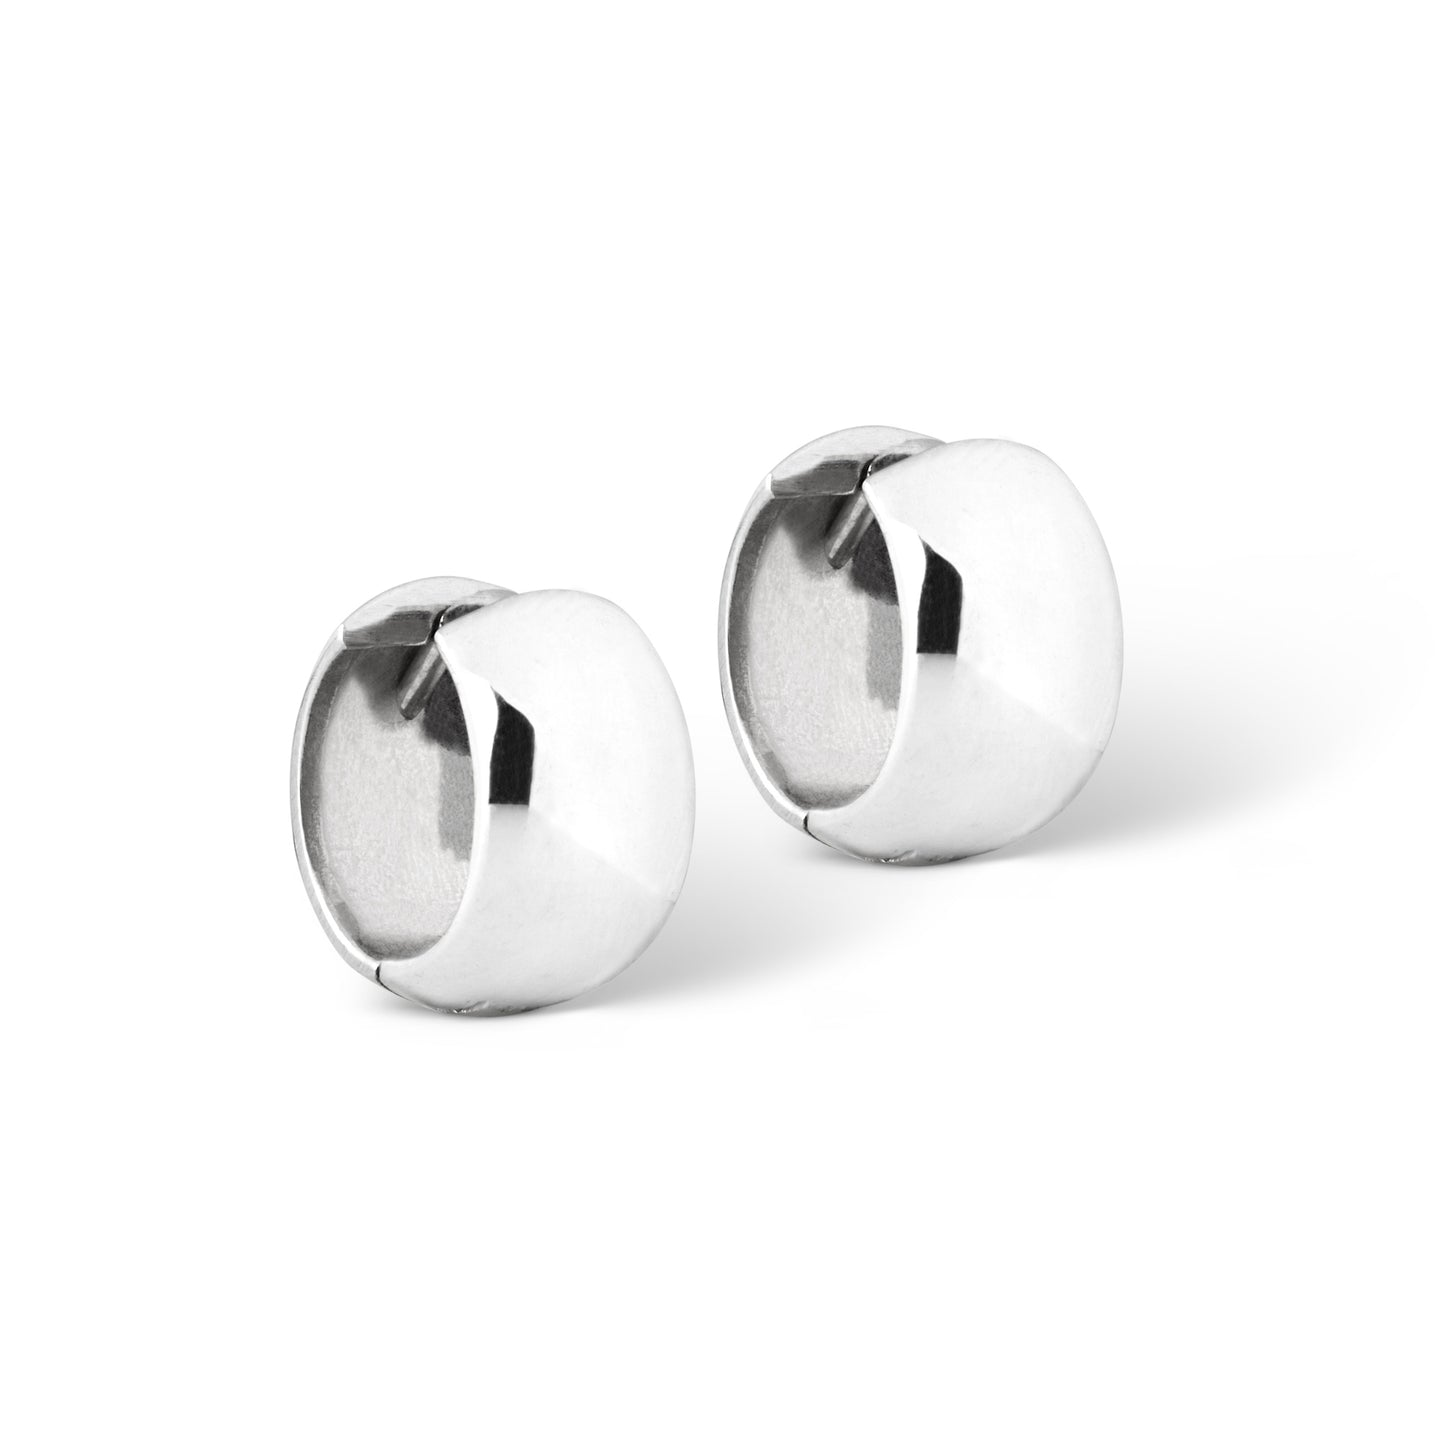 Ellis Hoops - Earrings